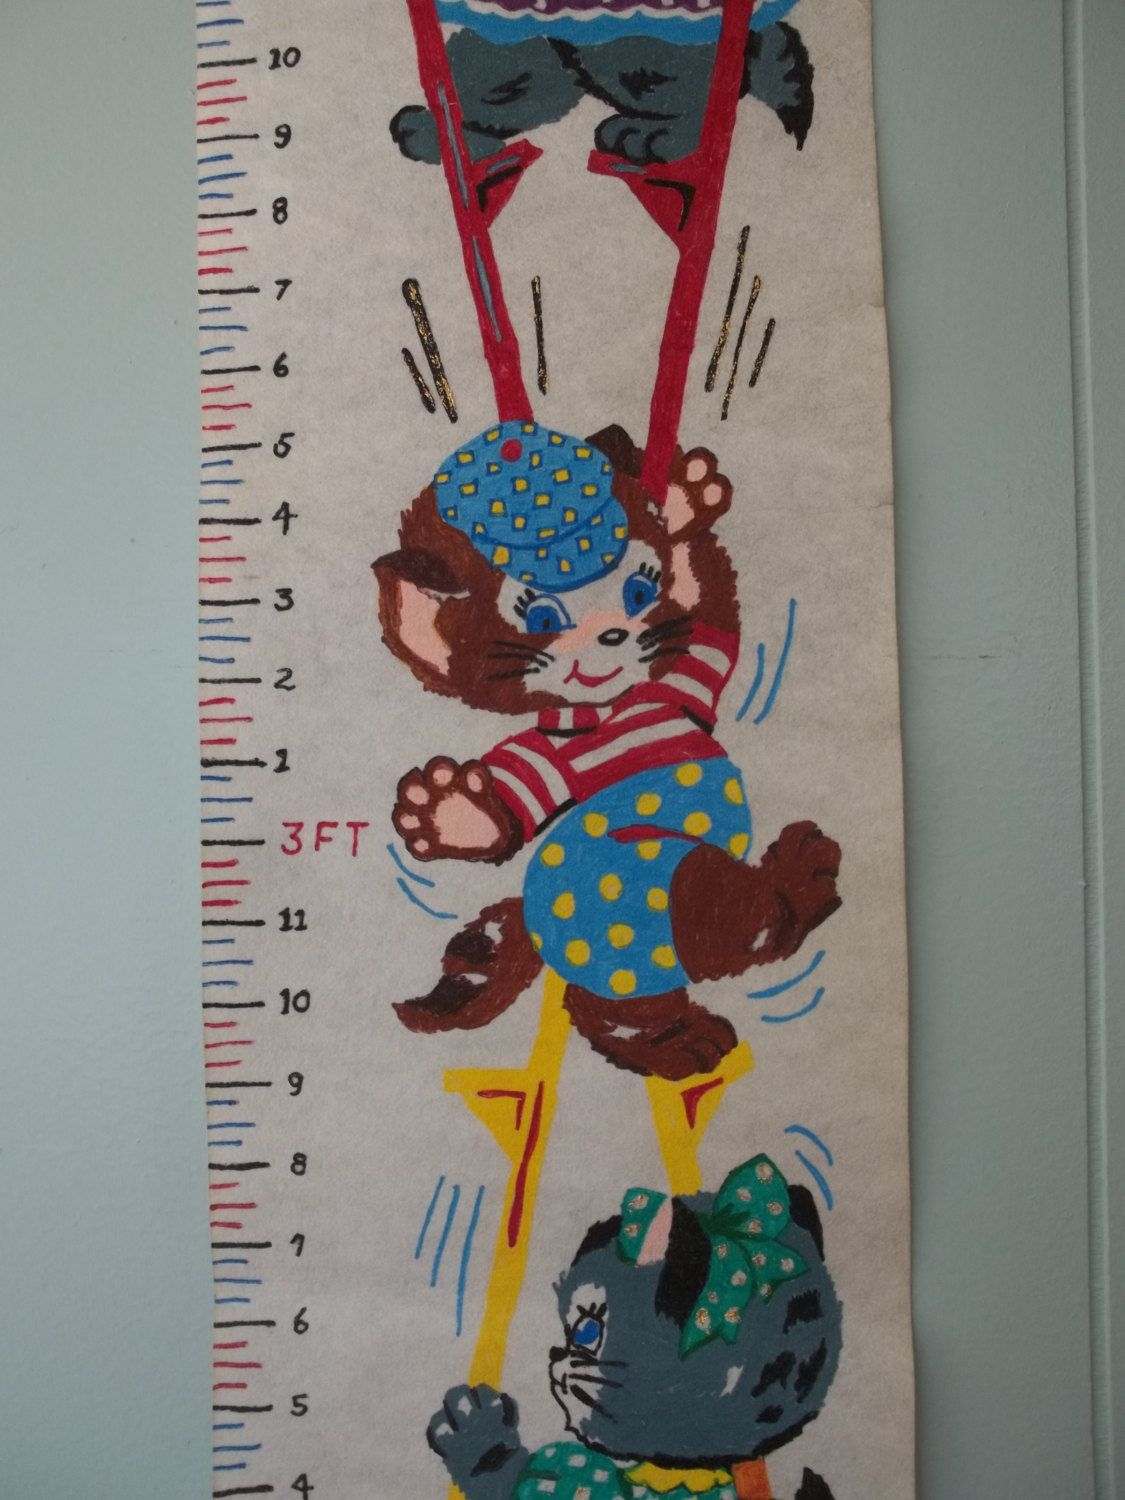 Vintage wall hanging growth chart kitty cat nursery decor vintage wall hanging growth chart kitty cat nursery decor handpainted embroidery paint height nvjuhfo Images